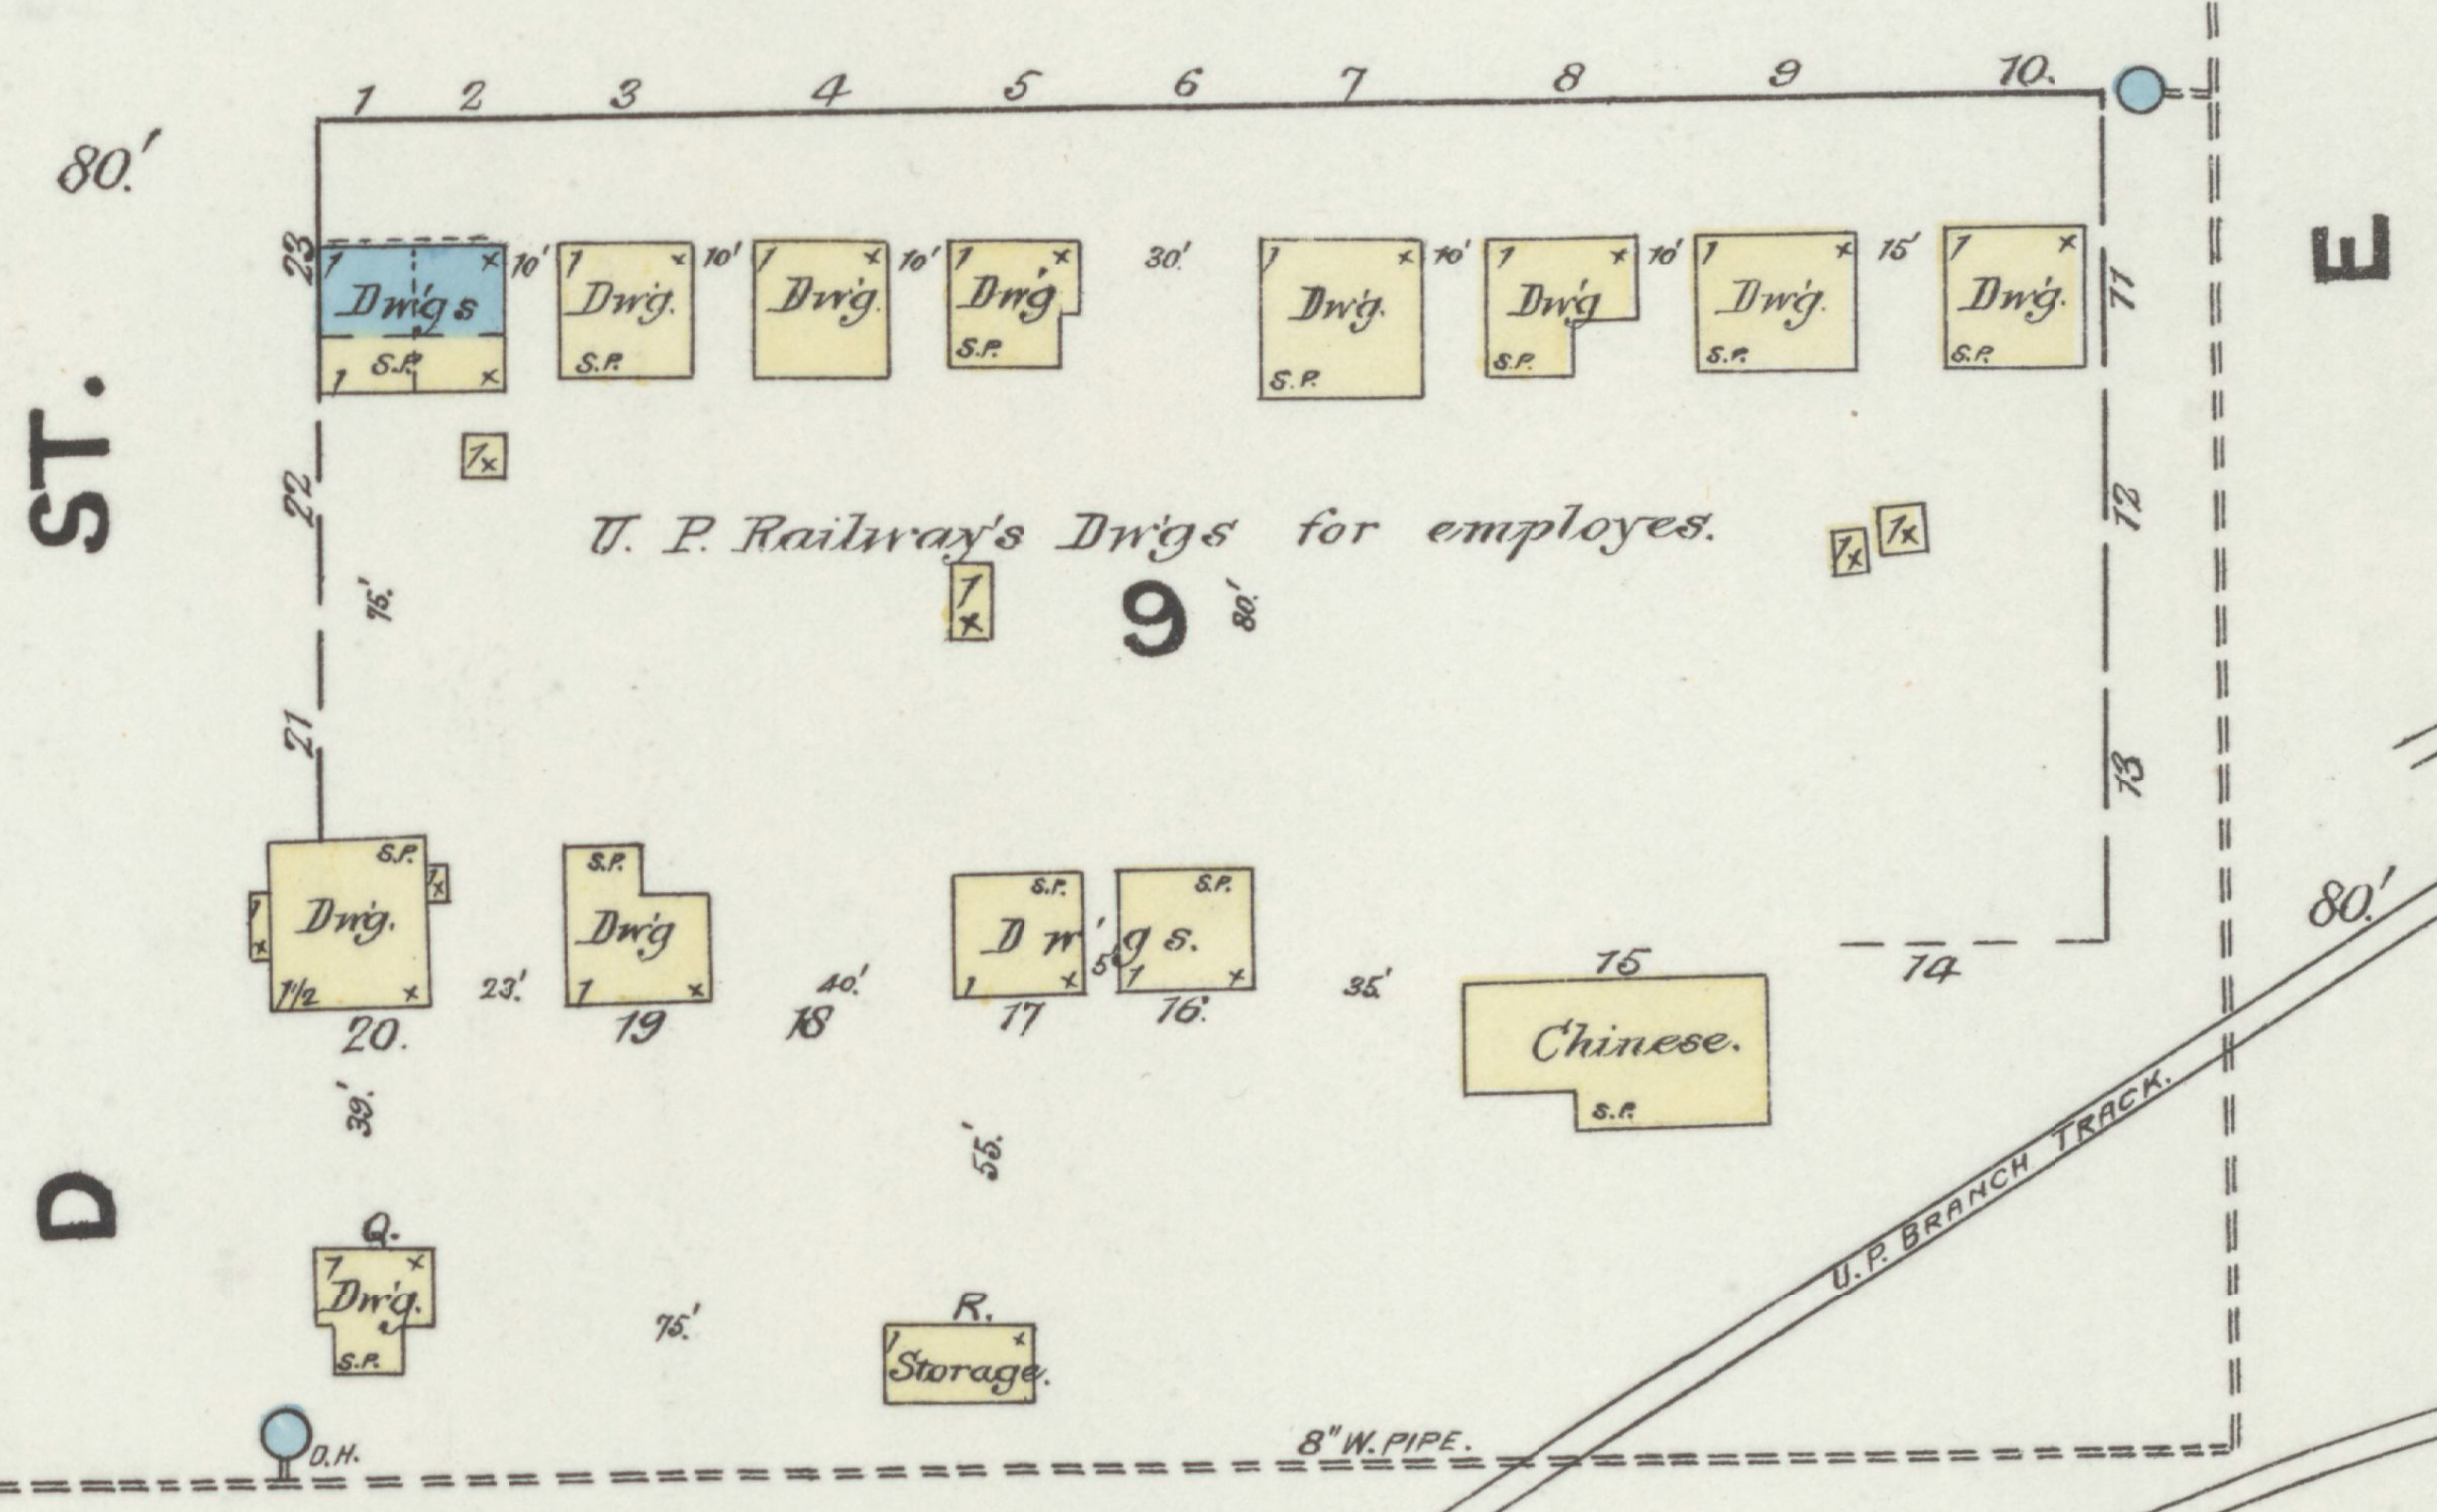 Sketch map of part of Rock Springs, Wyoming, in 1890, showing housing for miners.